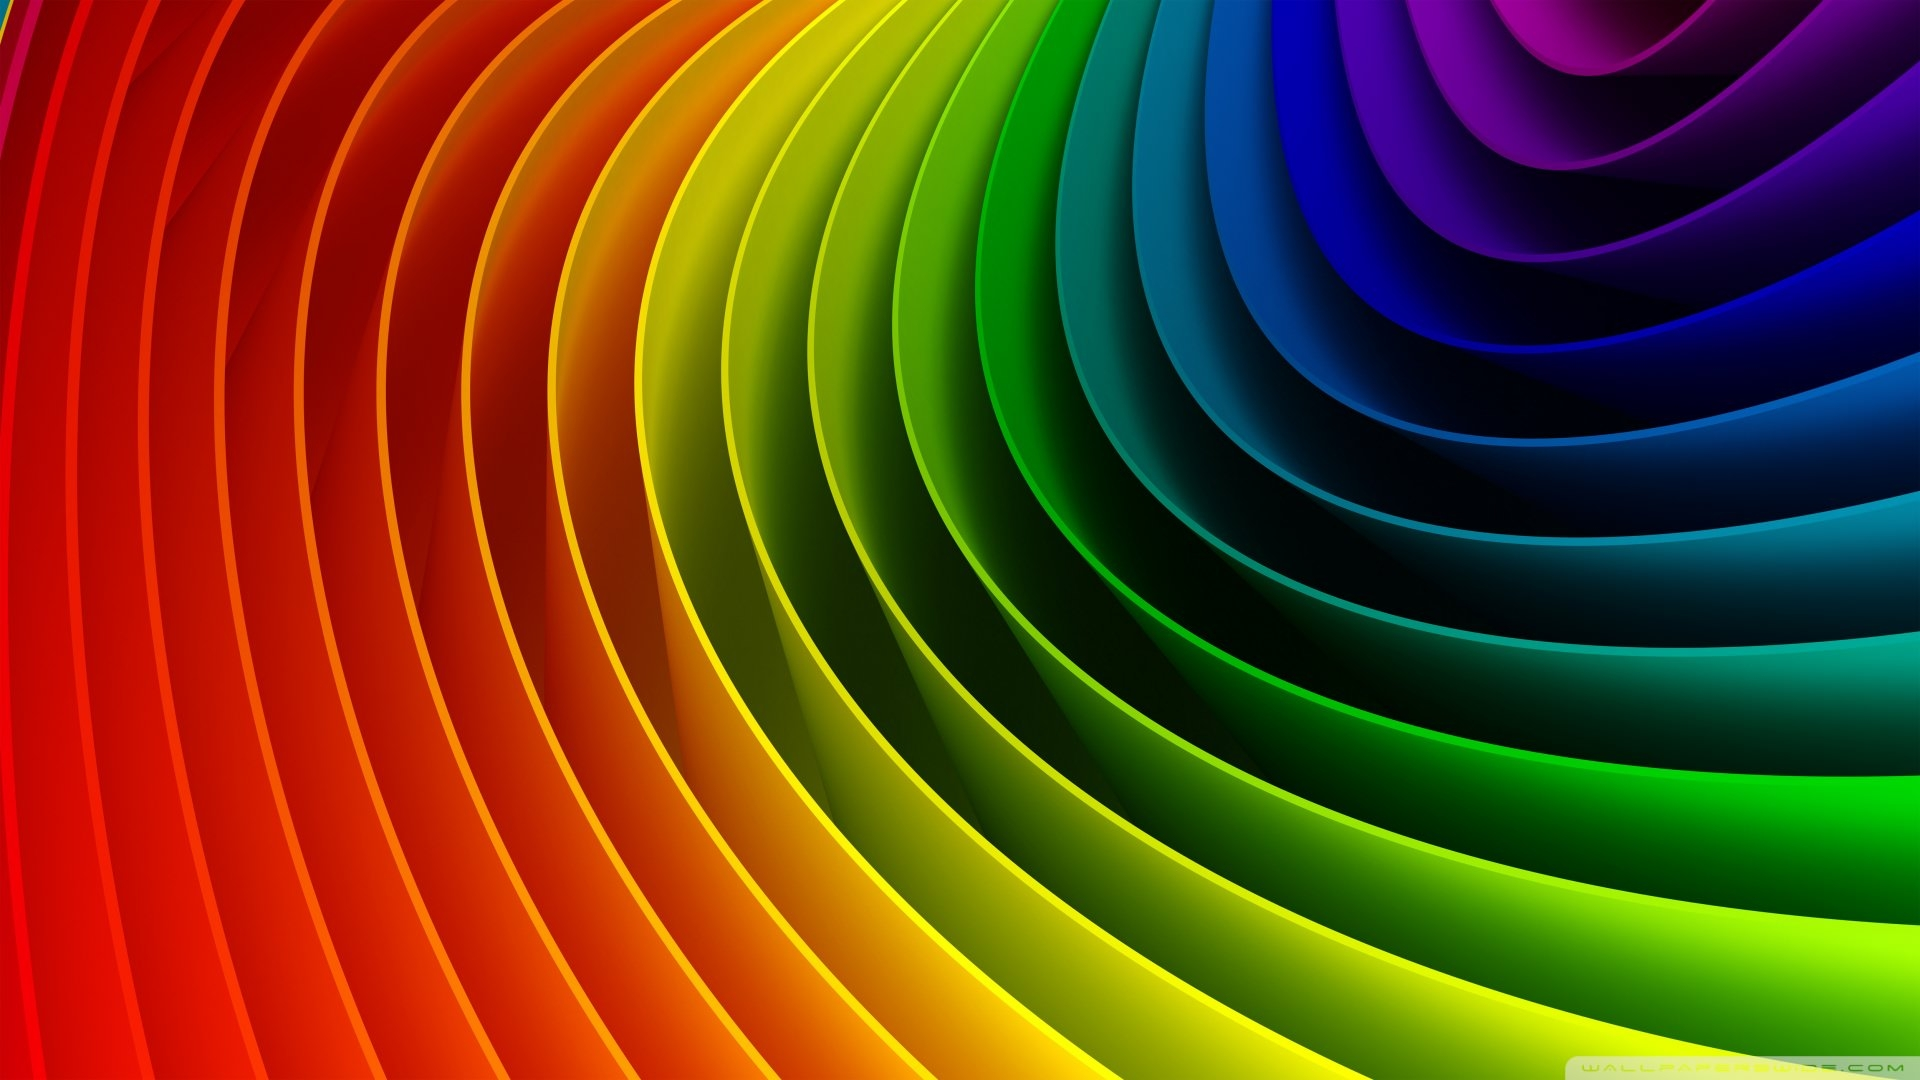 awesome rainbow wallpaper backgrounds - photo #28